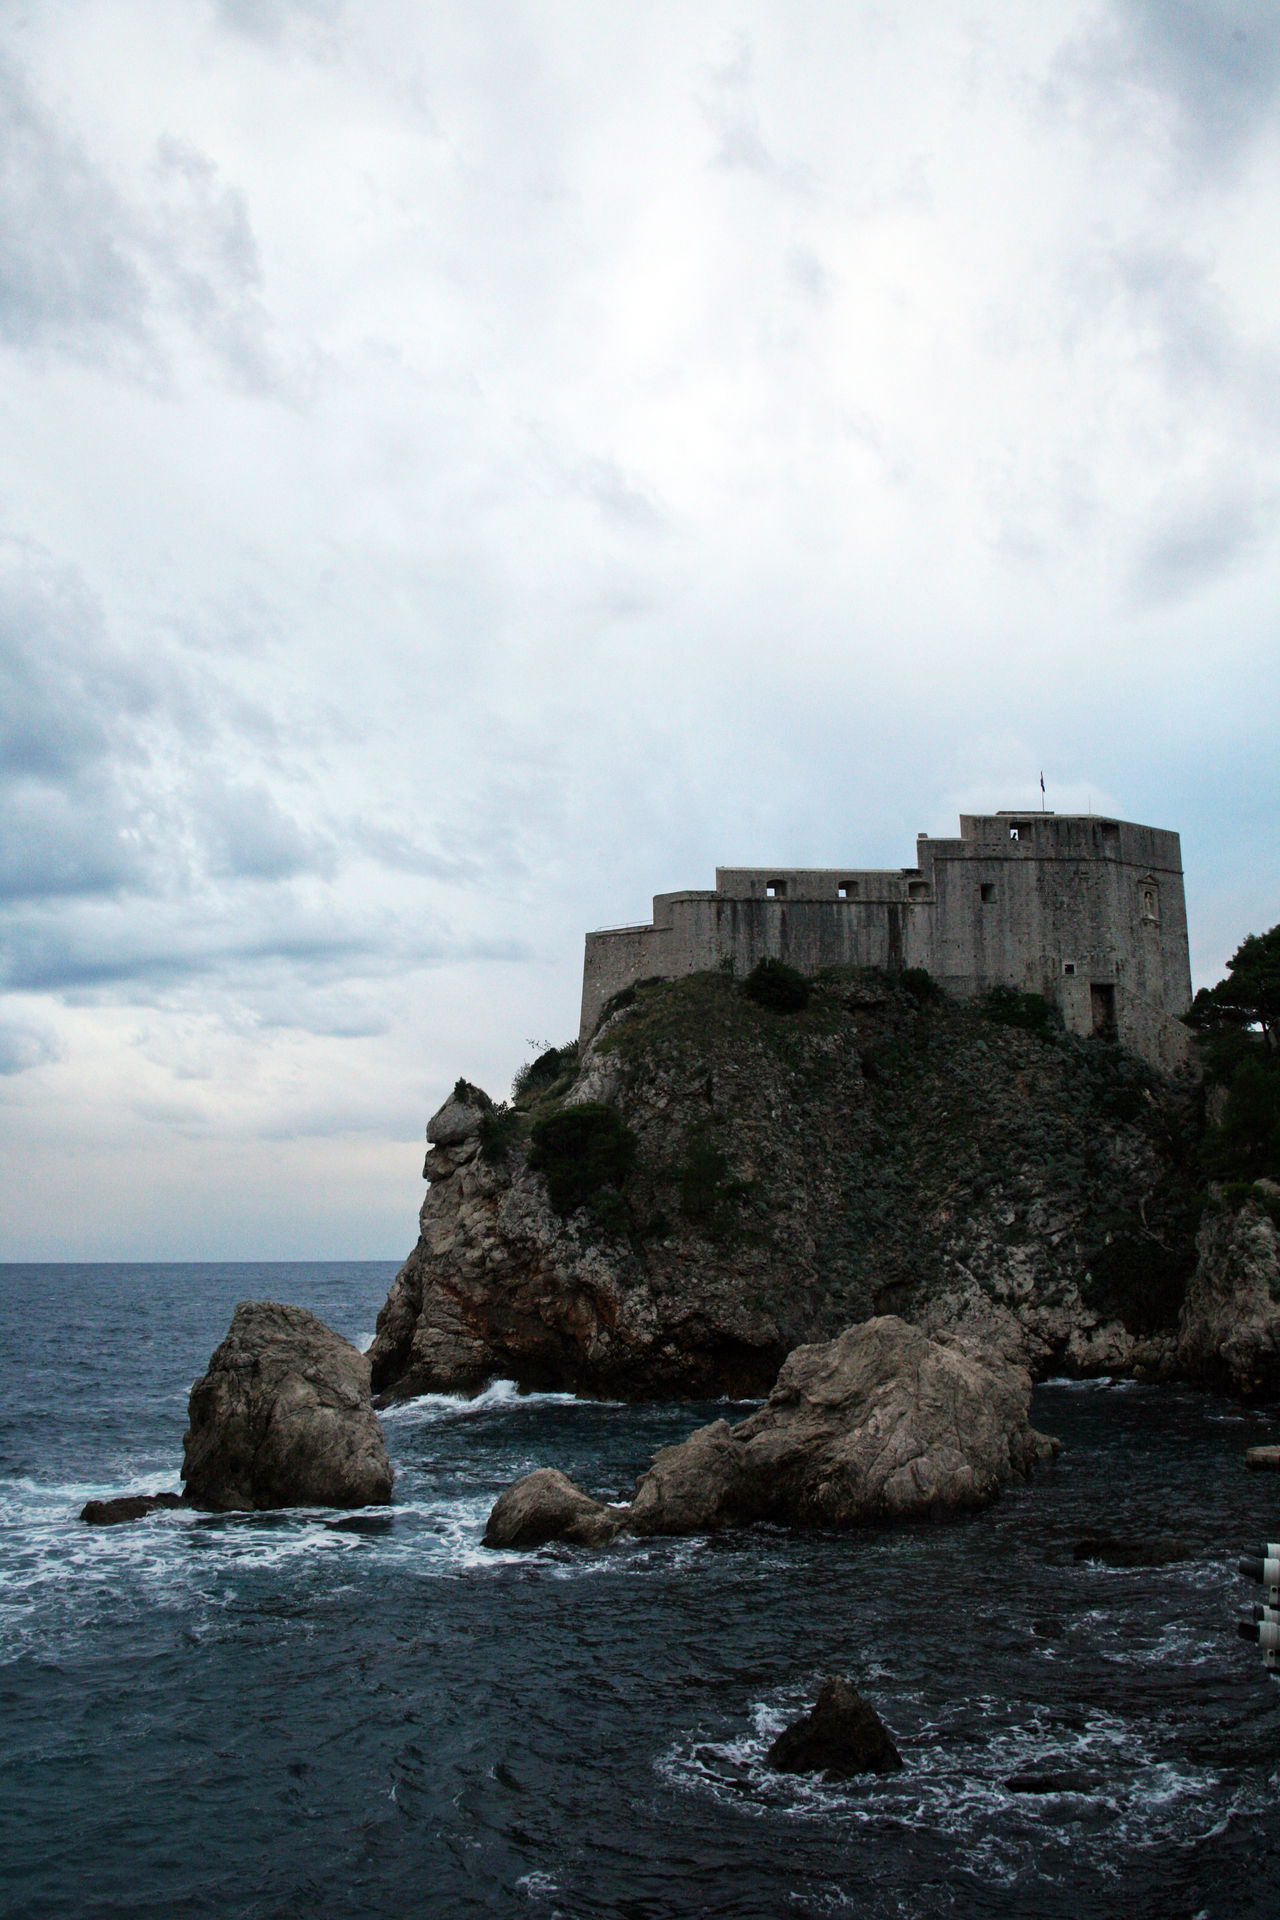 Dubrovnik,ancient fortress Lovrijenac,Croatia,Europe,1 Adriatic Coast Ancient Architecture Architecture Building Exterior Built Structure Cloud - Sky Day Dramatic Sky Dubrovnik, Croatia Fortress History Lovrijenac Nature No People Outdoors Rock - Object Sea Sky Storm Clouds Water